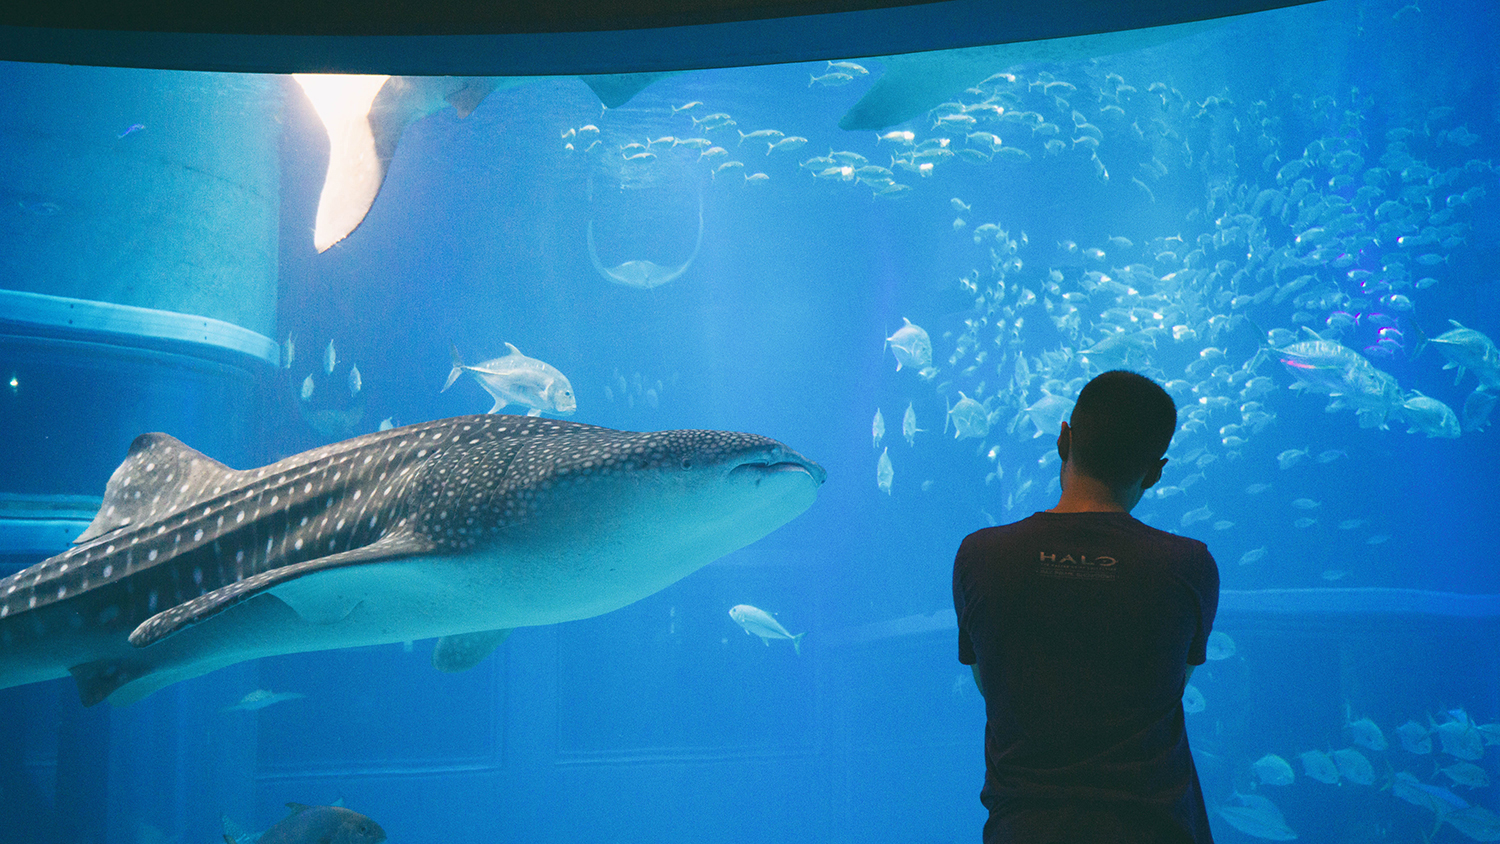 Reid enjoying the massive Whale Shark.